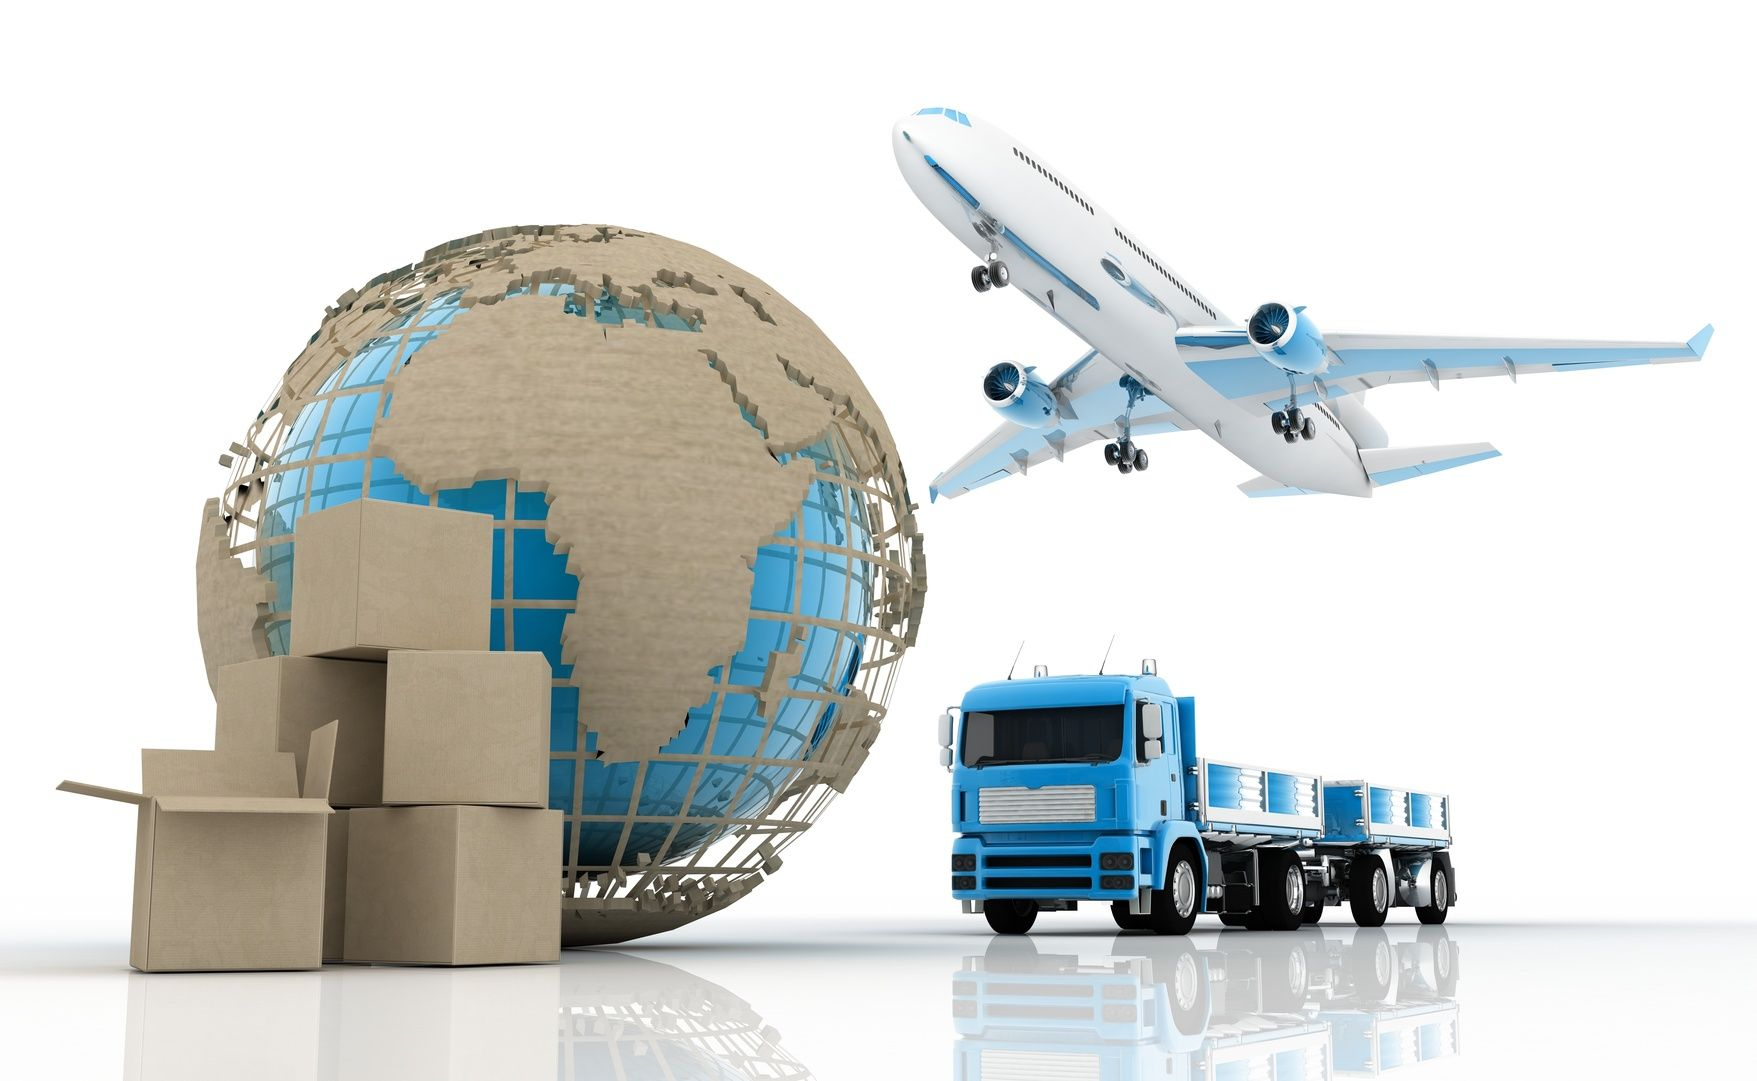 The Best #Courier #Service from #India to #Australia, our service is